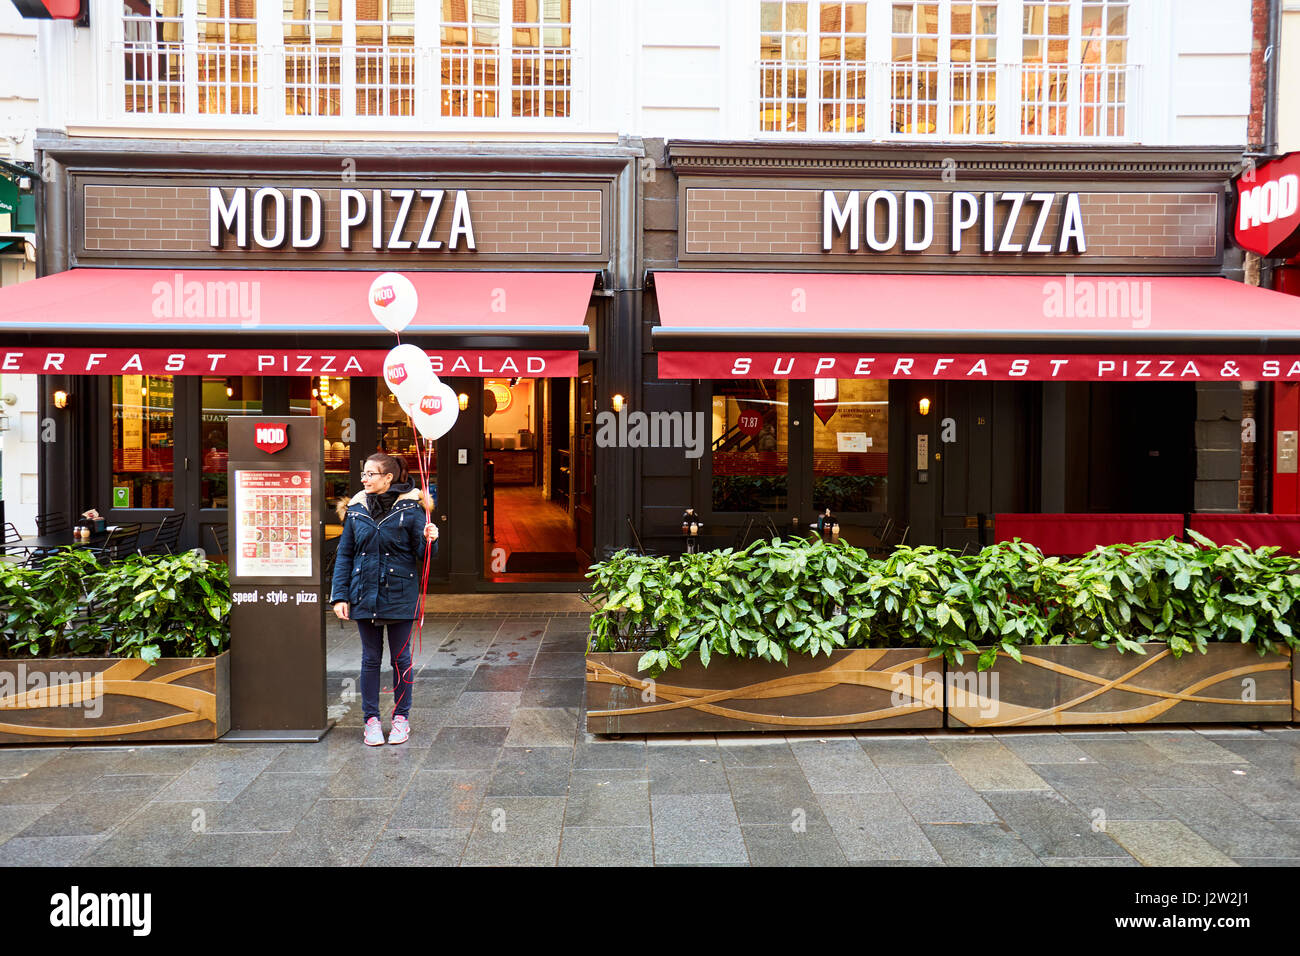 A Woman Stands Outside Mod Pizza Restaurant In London Stock